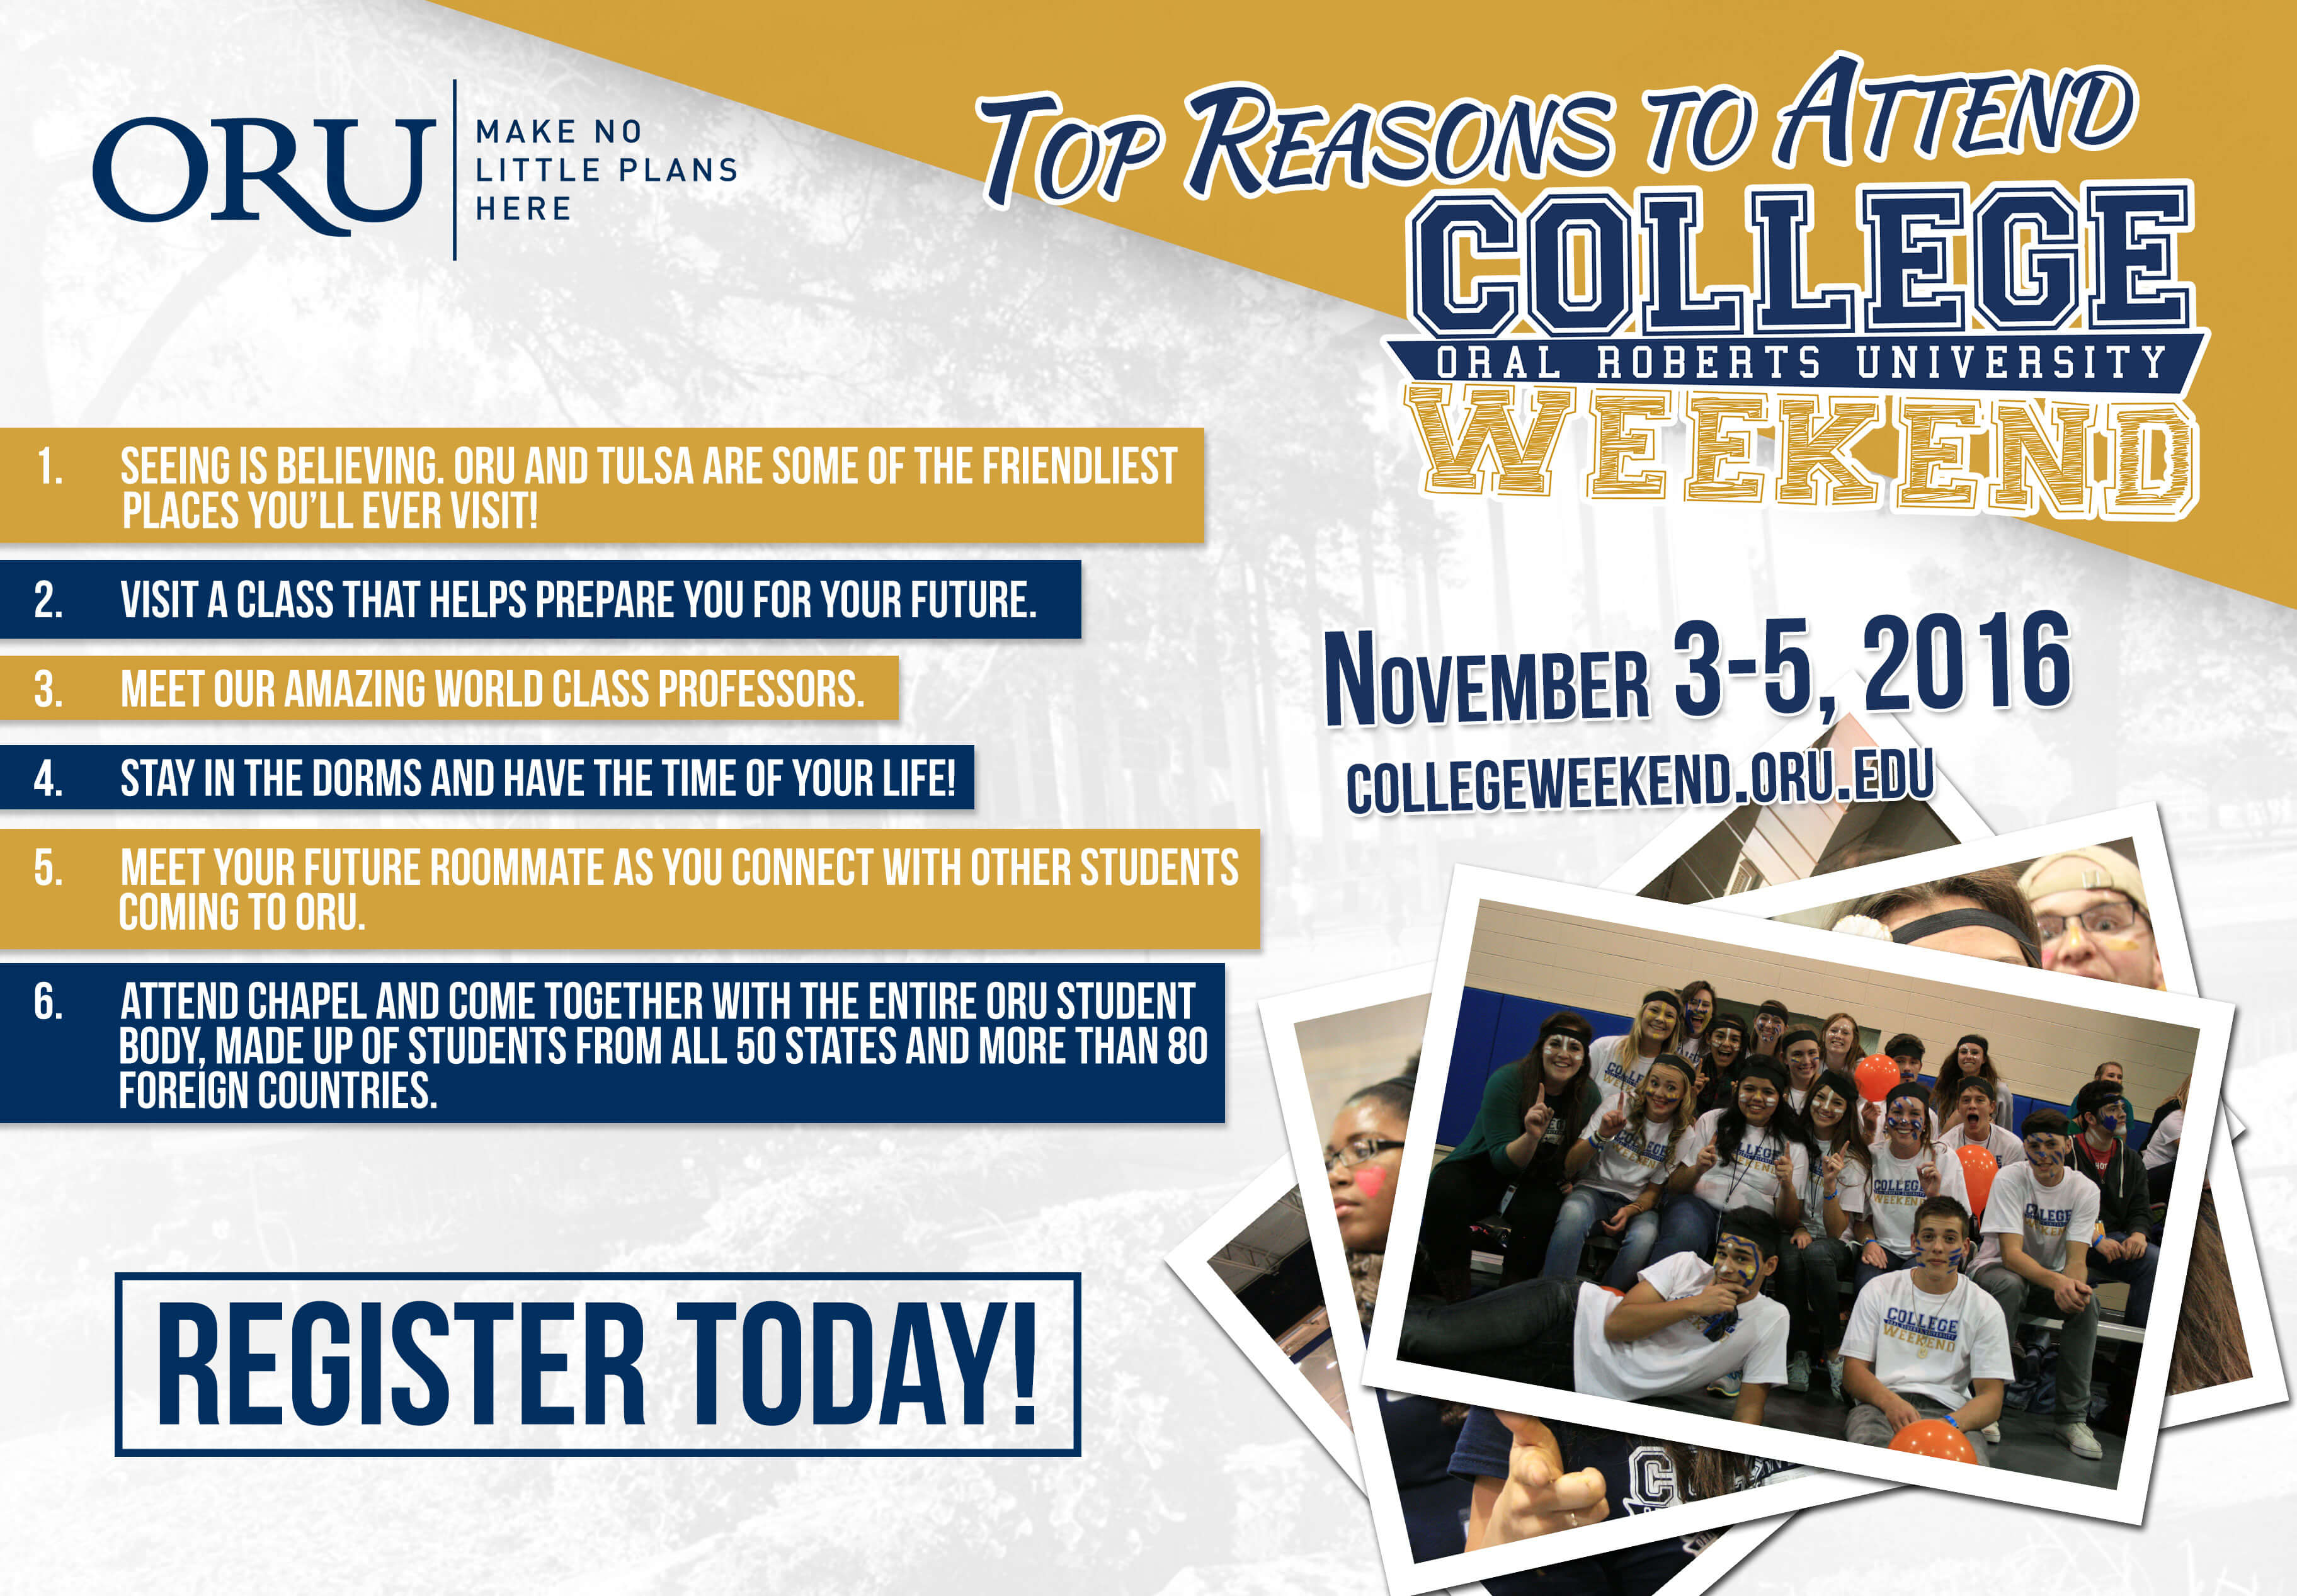 Top reasons to come to College Weekend